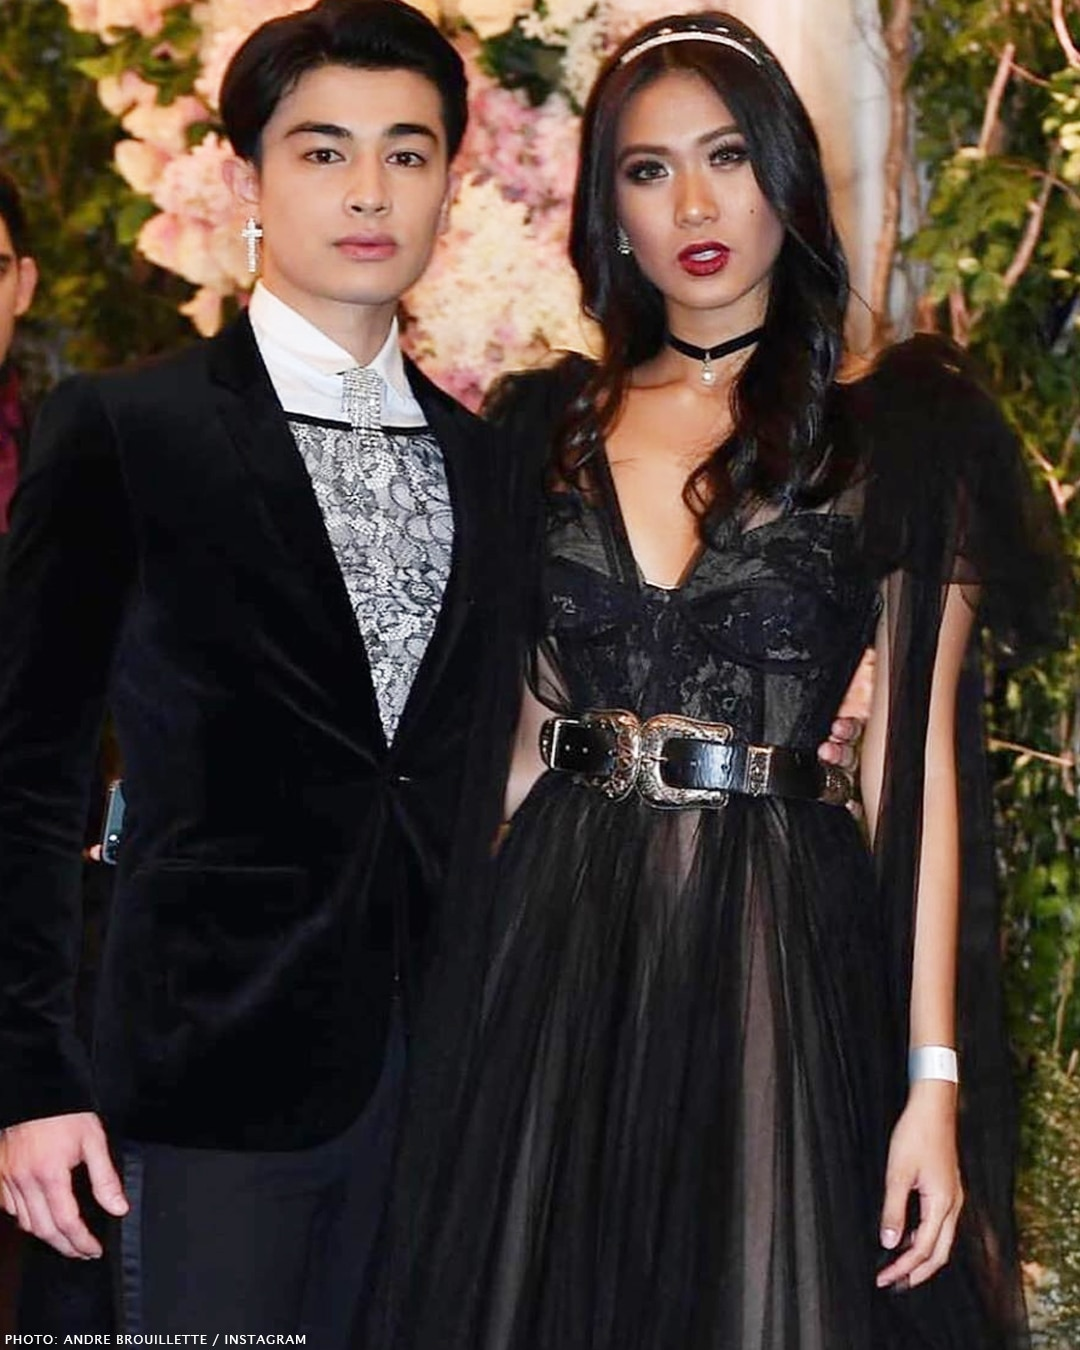 Lou Yanong and Andre Brouillette